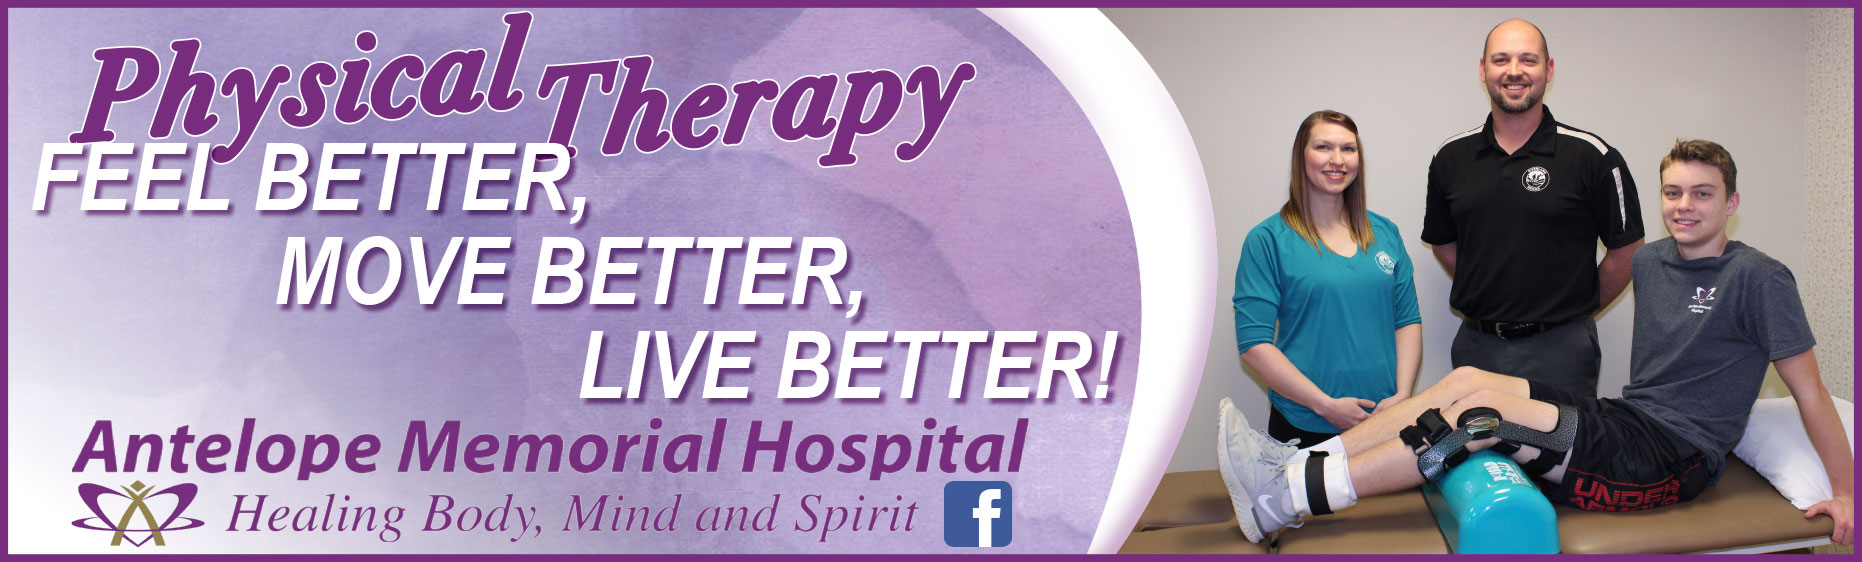 Physical Therapy Fell Better, Move Better, Live Better! Antelope Memorial Hospital Healing Body, Mind, and Spirit.